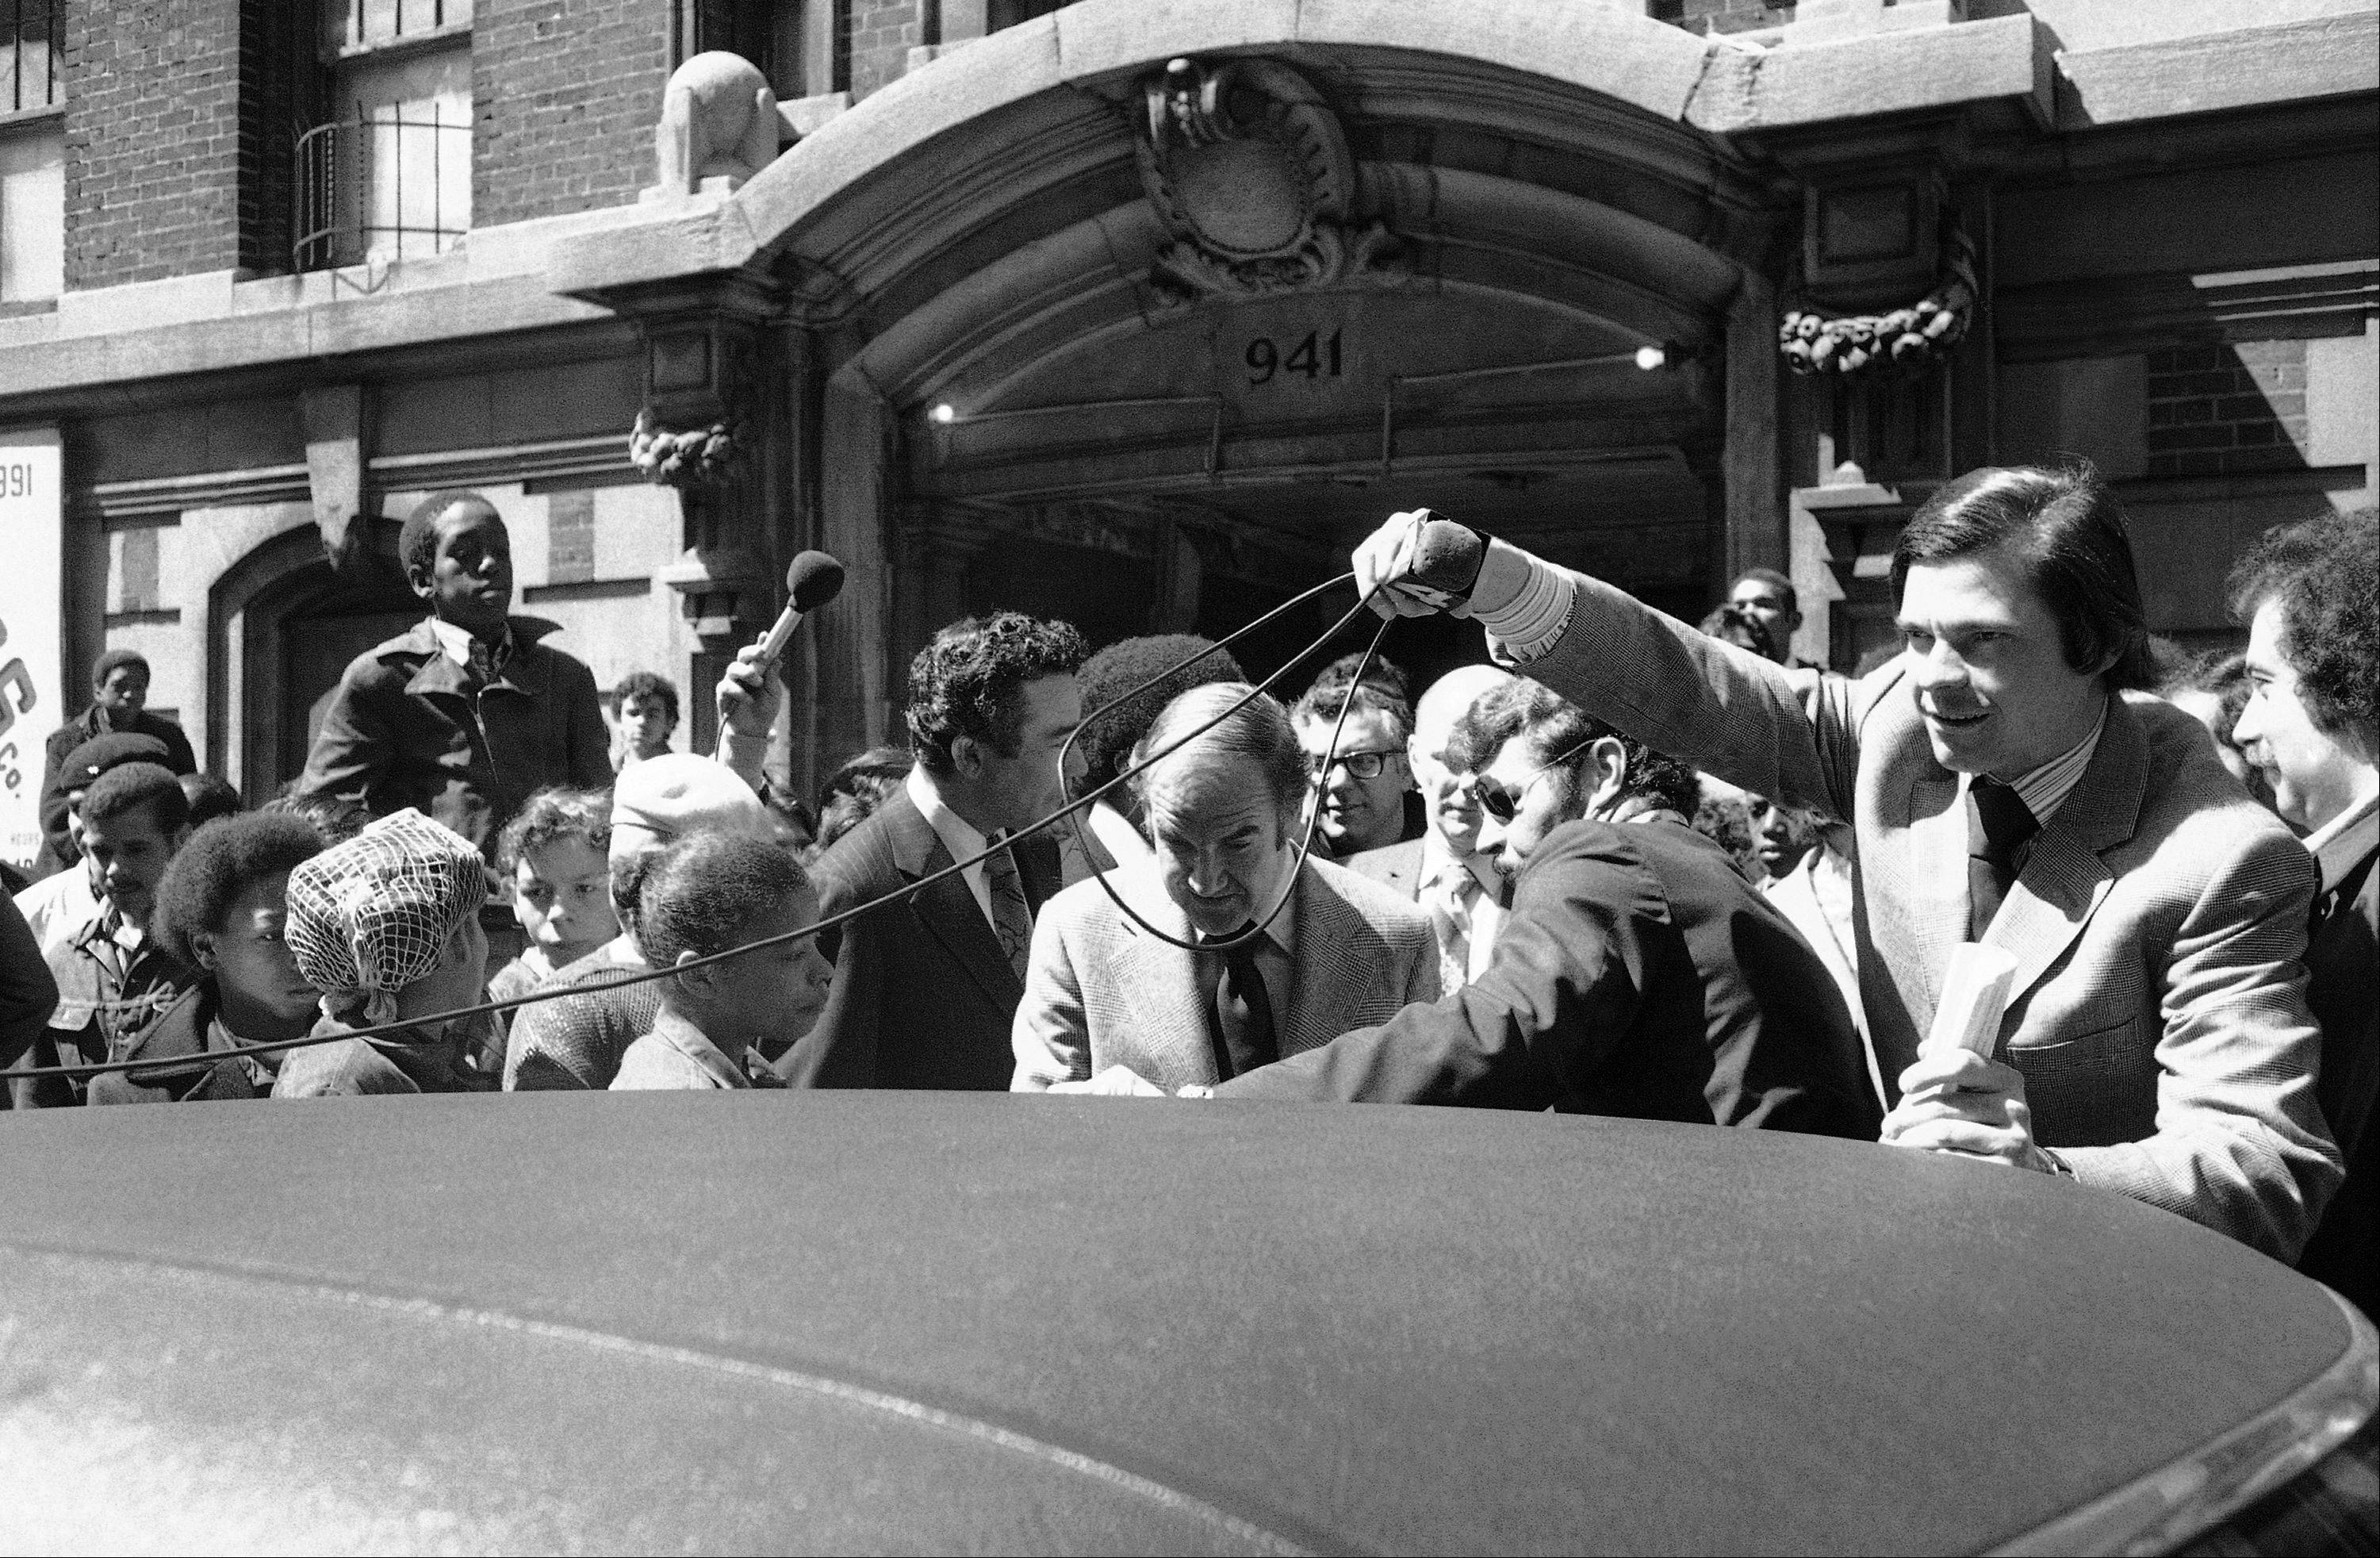 A television microphone cord dangles in front of Sen. George McGovern as the presidential candidate enters car in South Bronx area of New York, April 21, 1972.